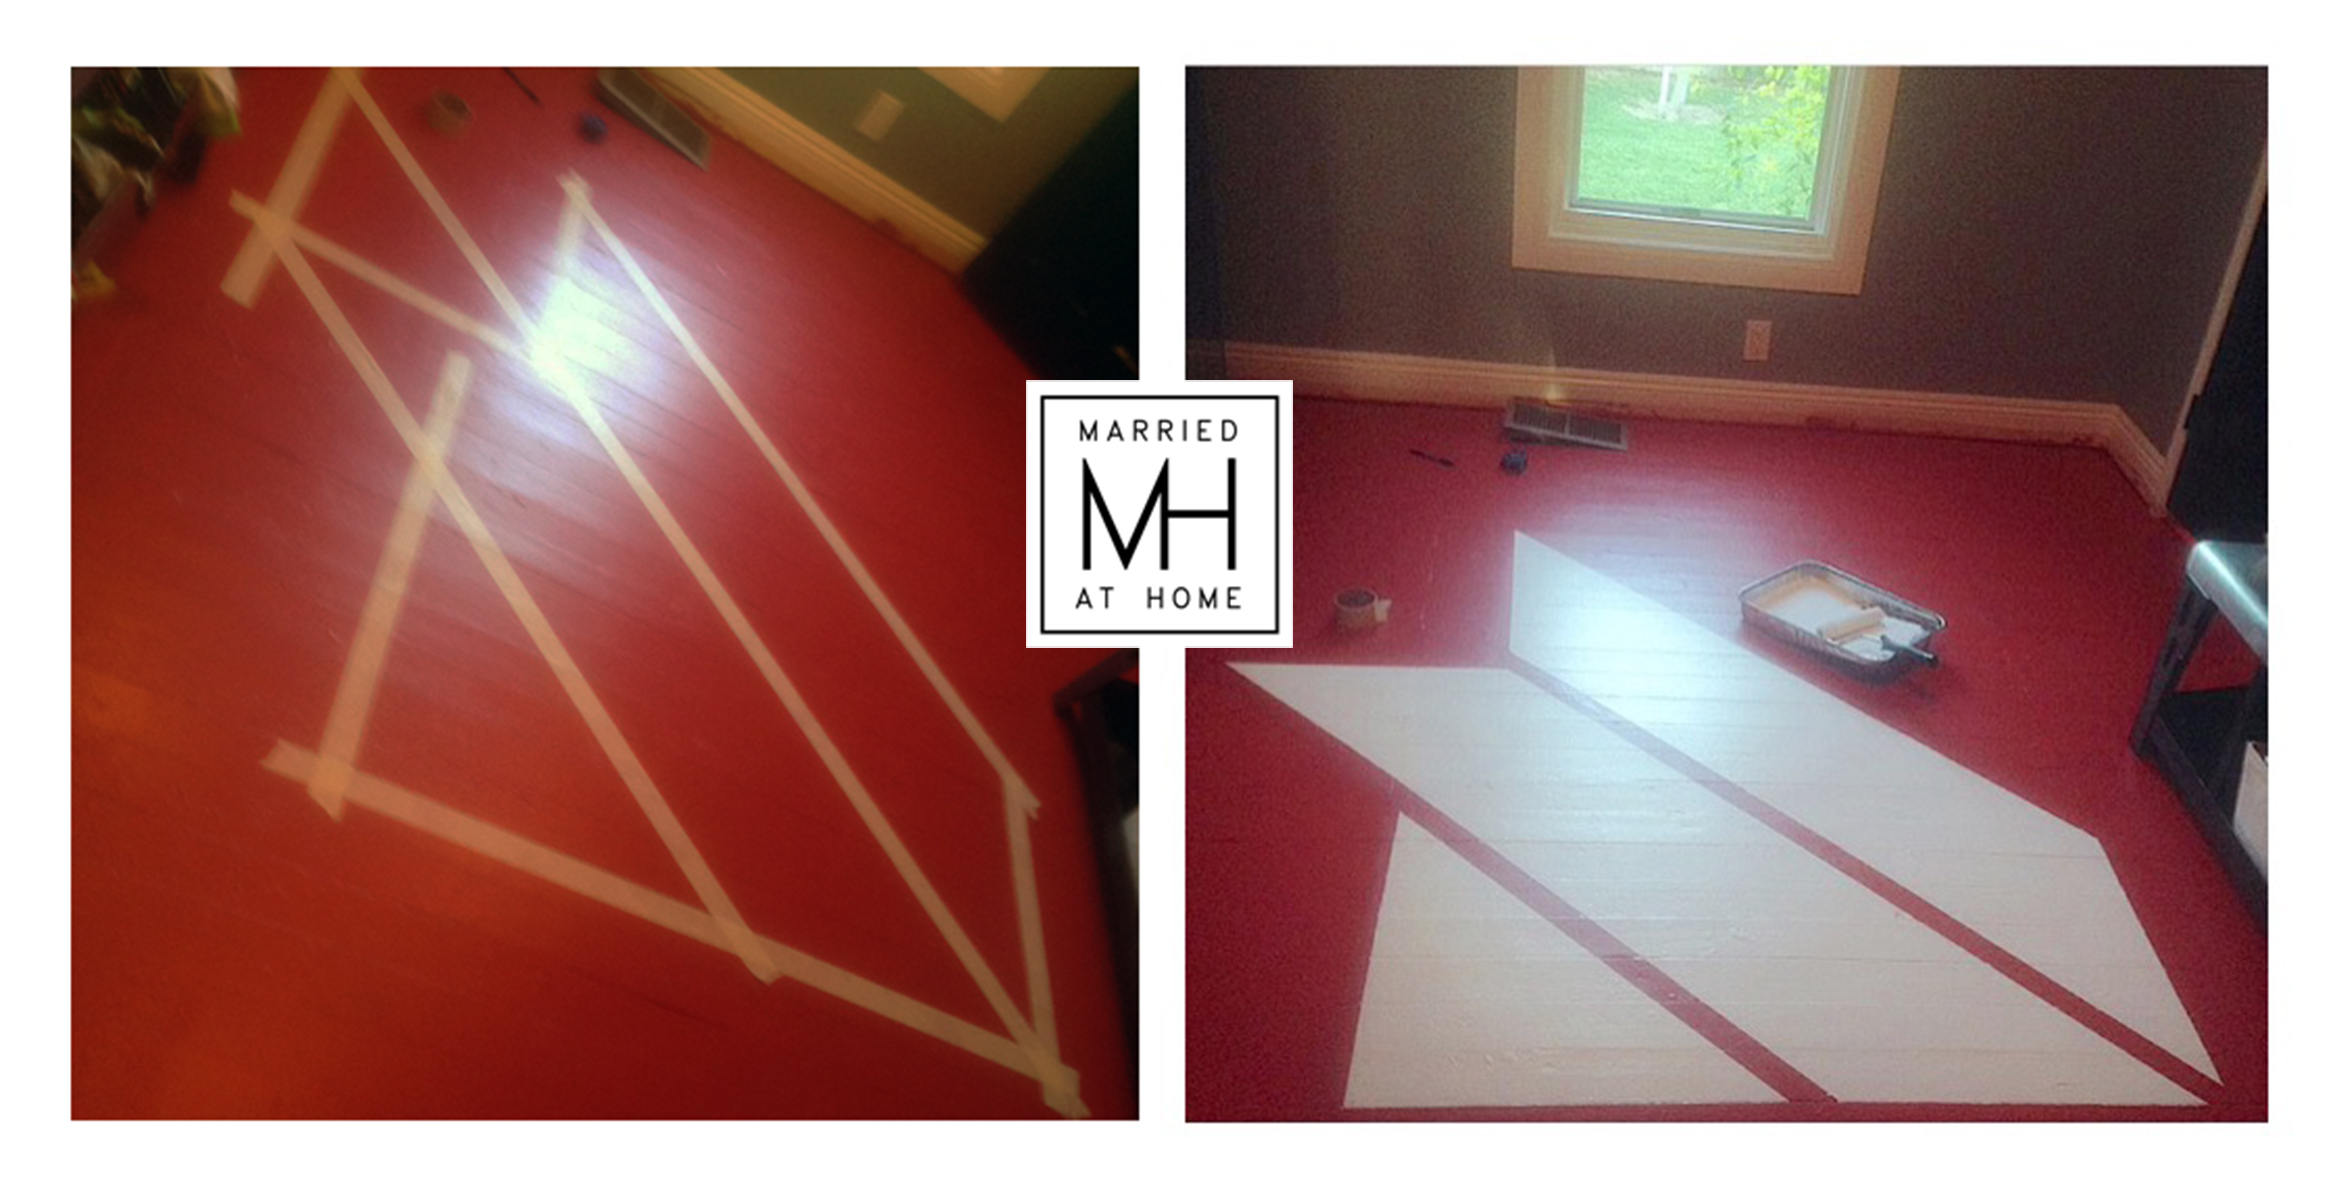 Painted Wood Floors | Married At Home